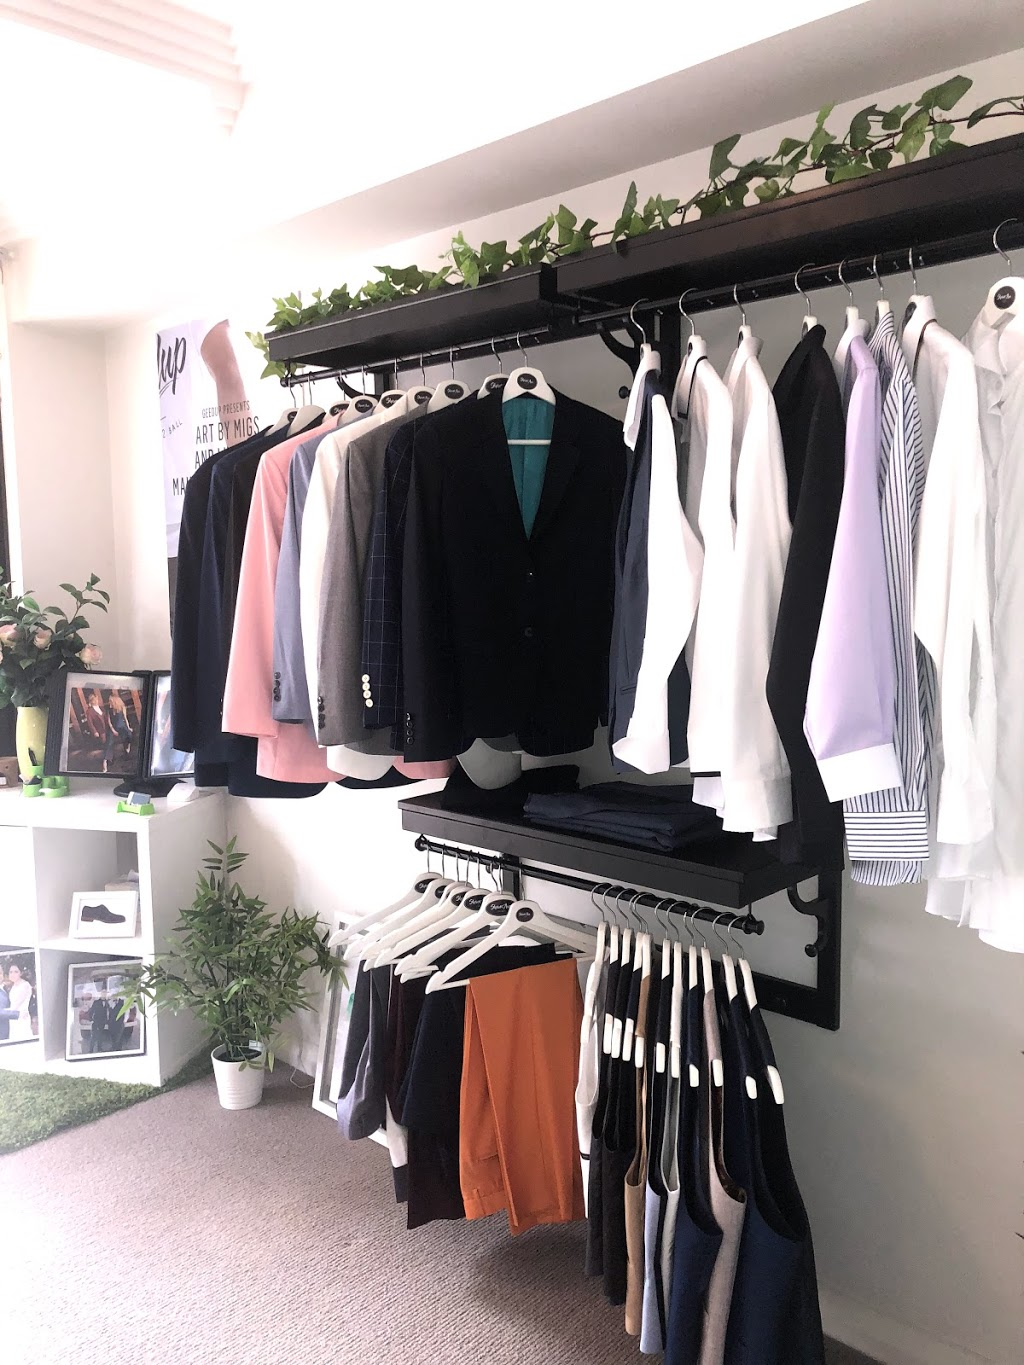 Shane Ave | clothing store | 3/48 Edwin St, Mortlake NSW 2137, Australia | 0407740642 OR +61 407 740 642